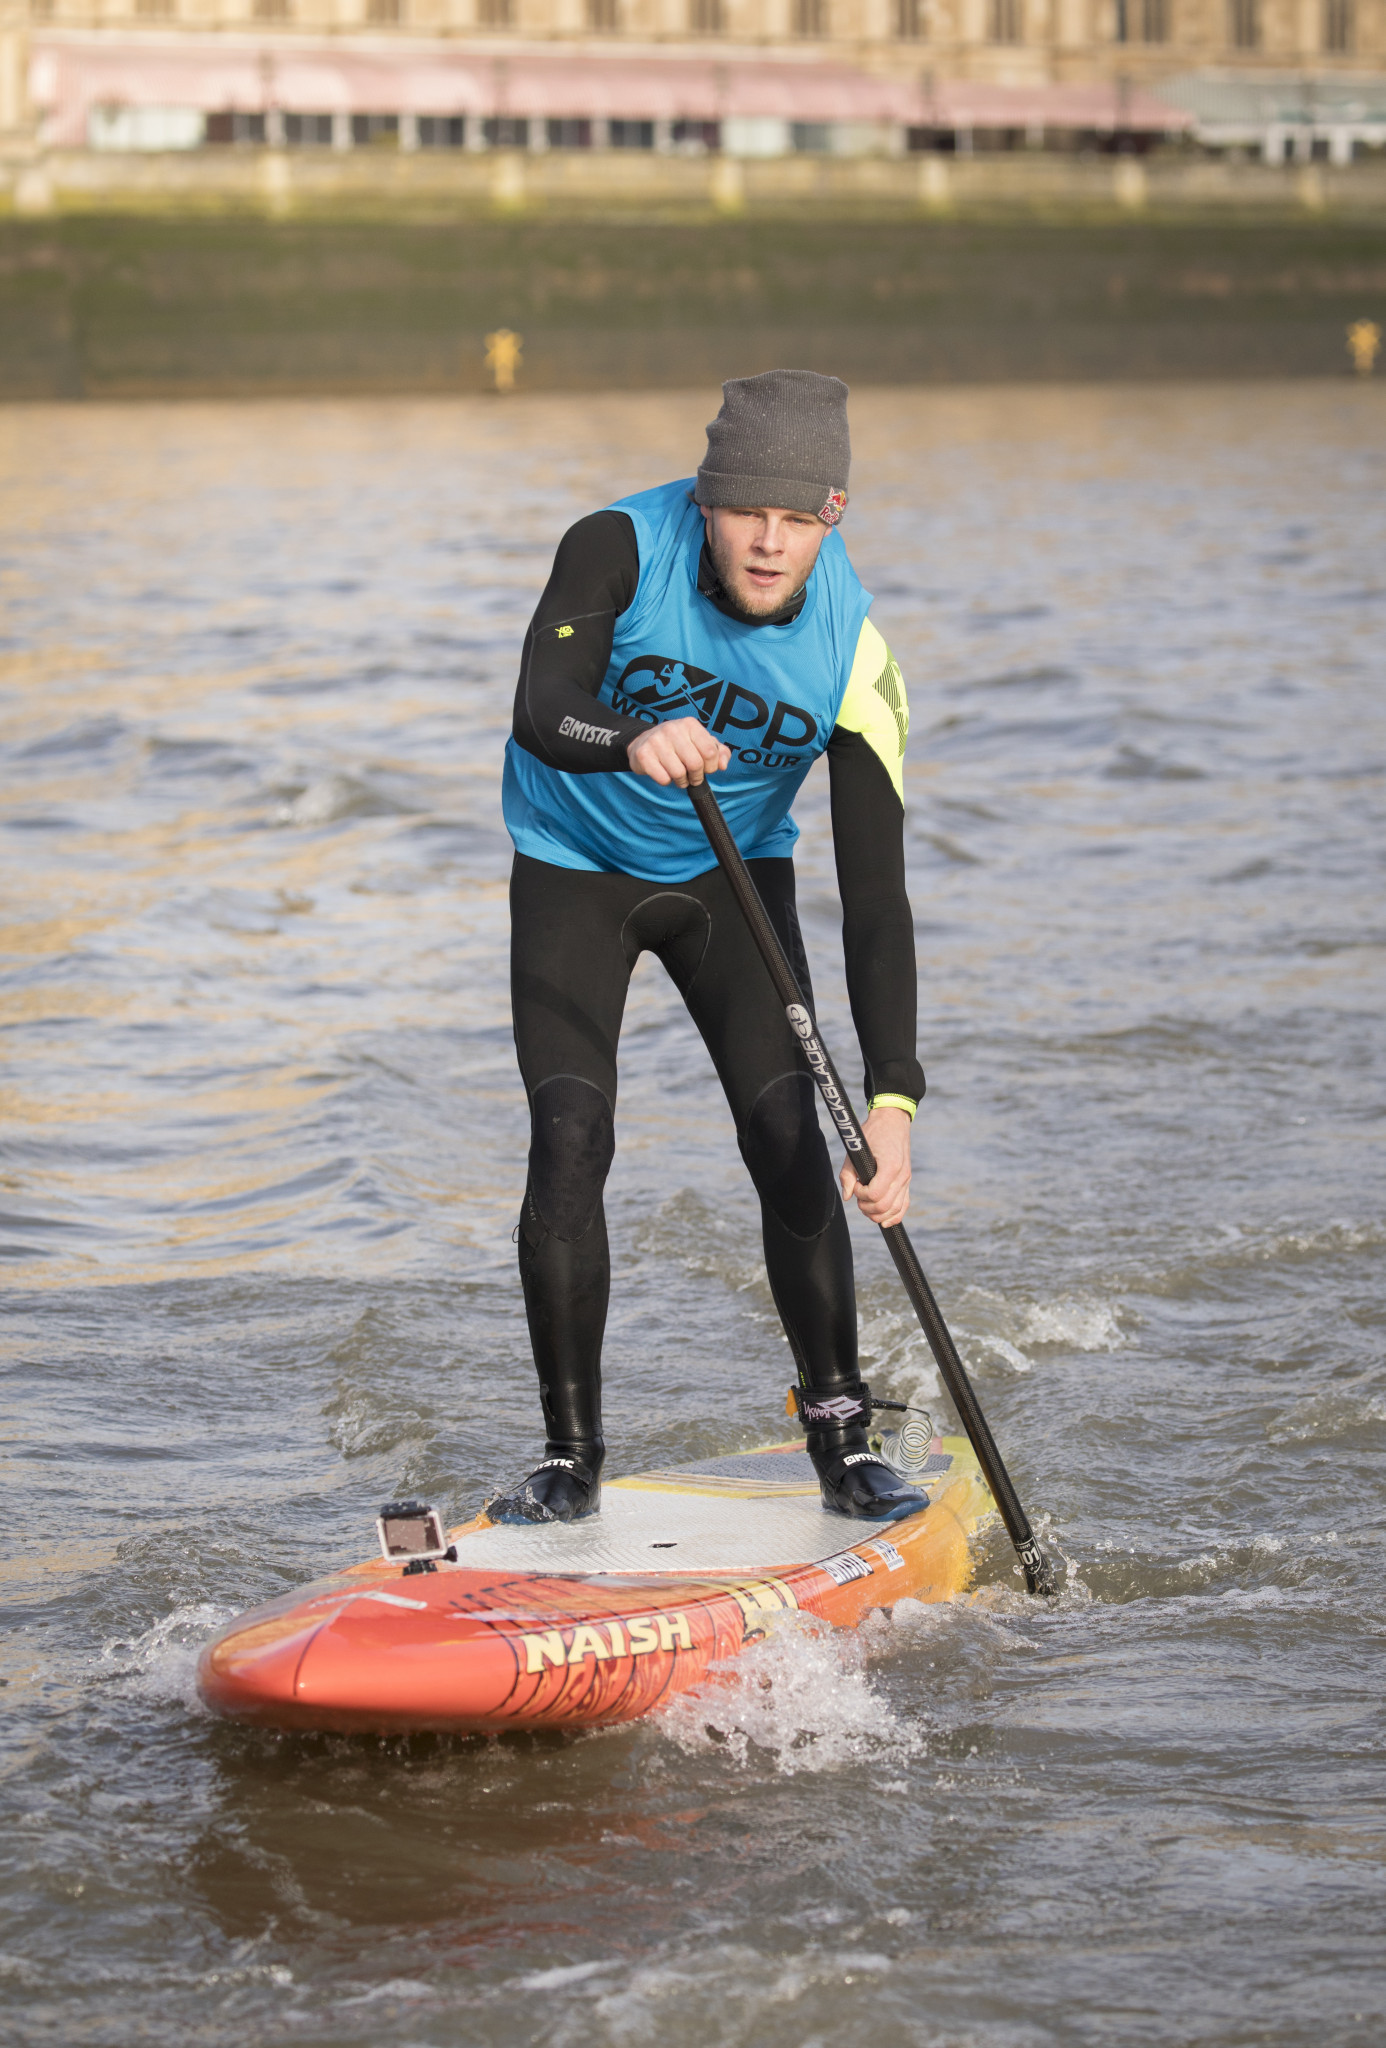 Casper Steinfath, a four-time SUP world champion and ISA vice-president, has claimed he can say